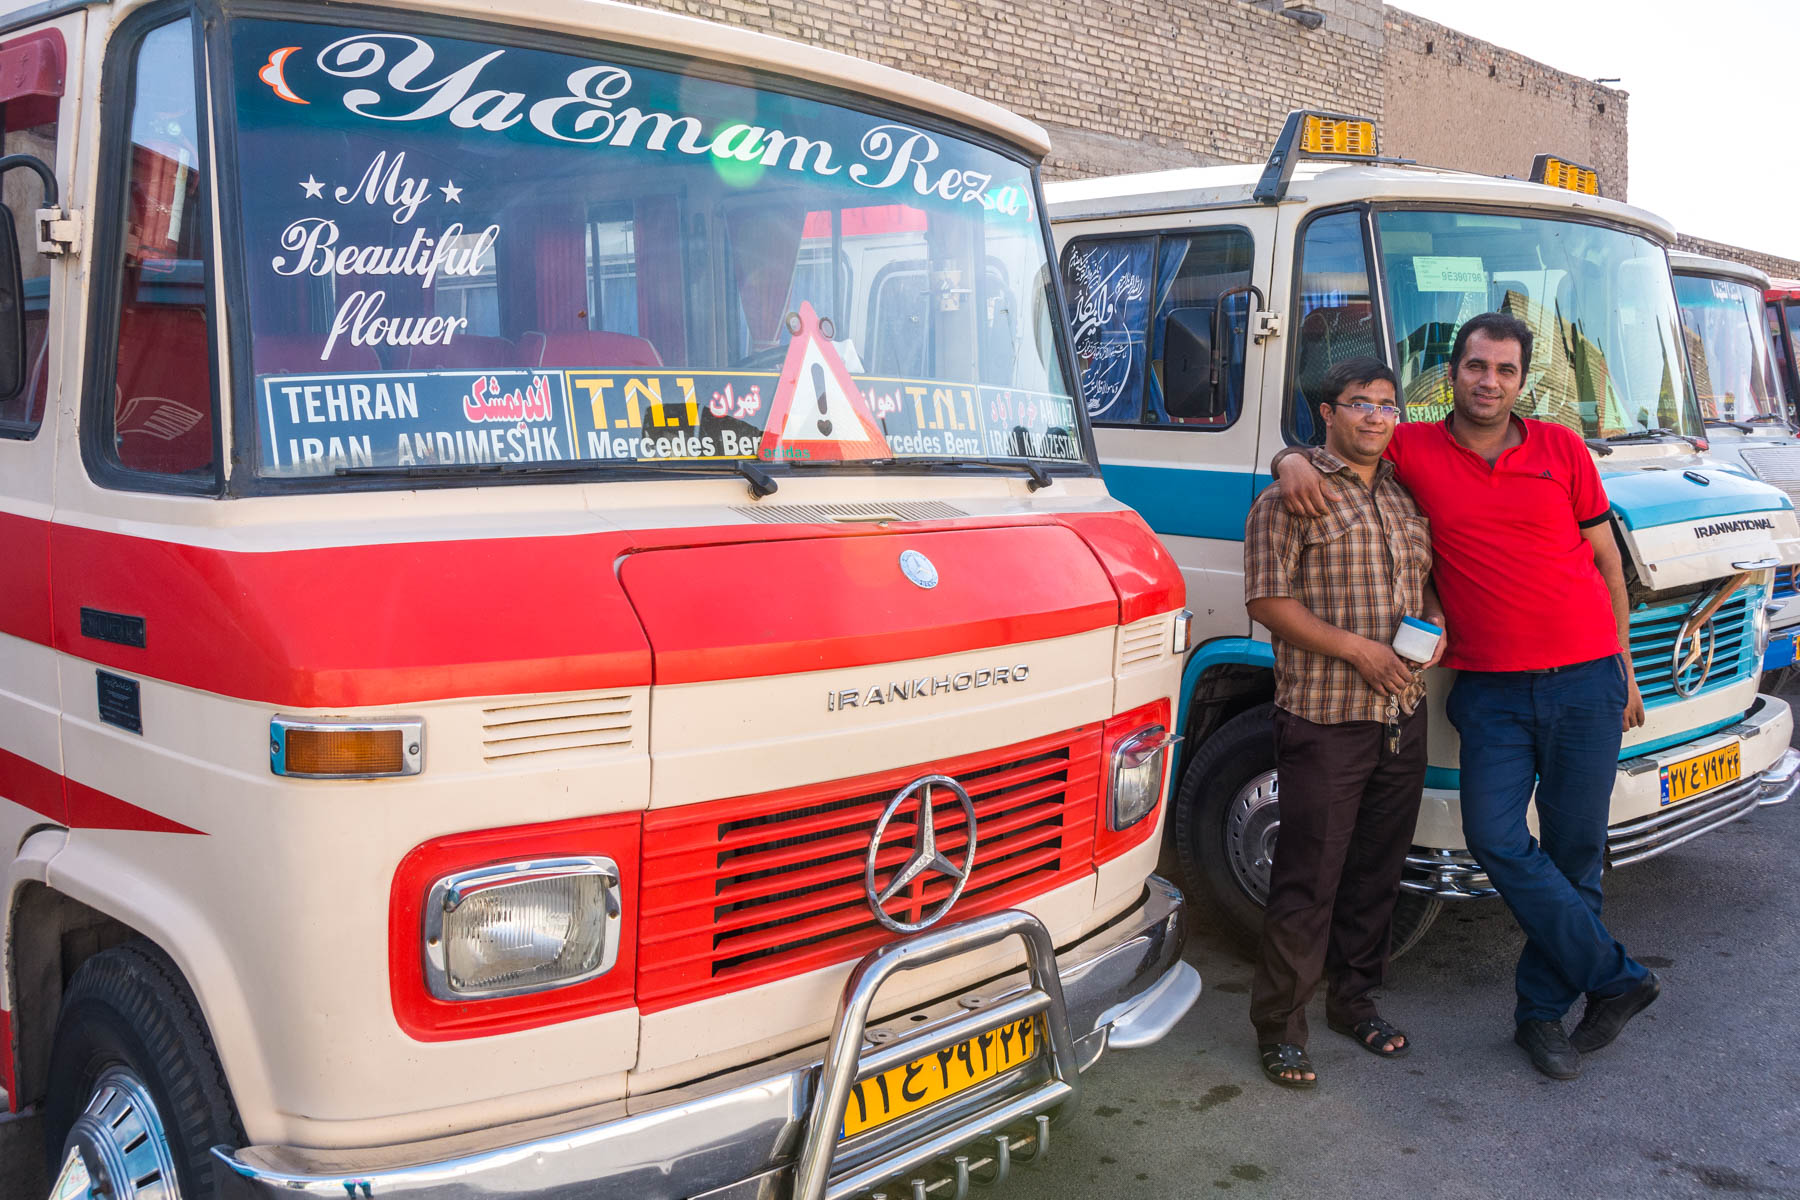 I'm foreign, so I must be rich: that's why I ride in cheap minibuses in Iran.